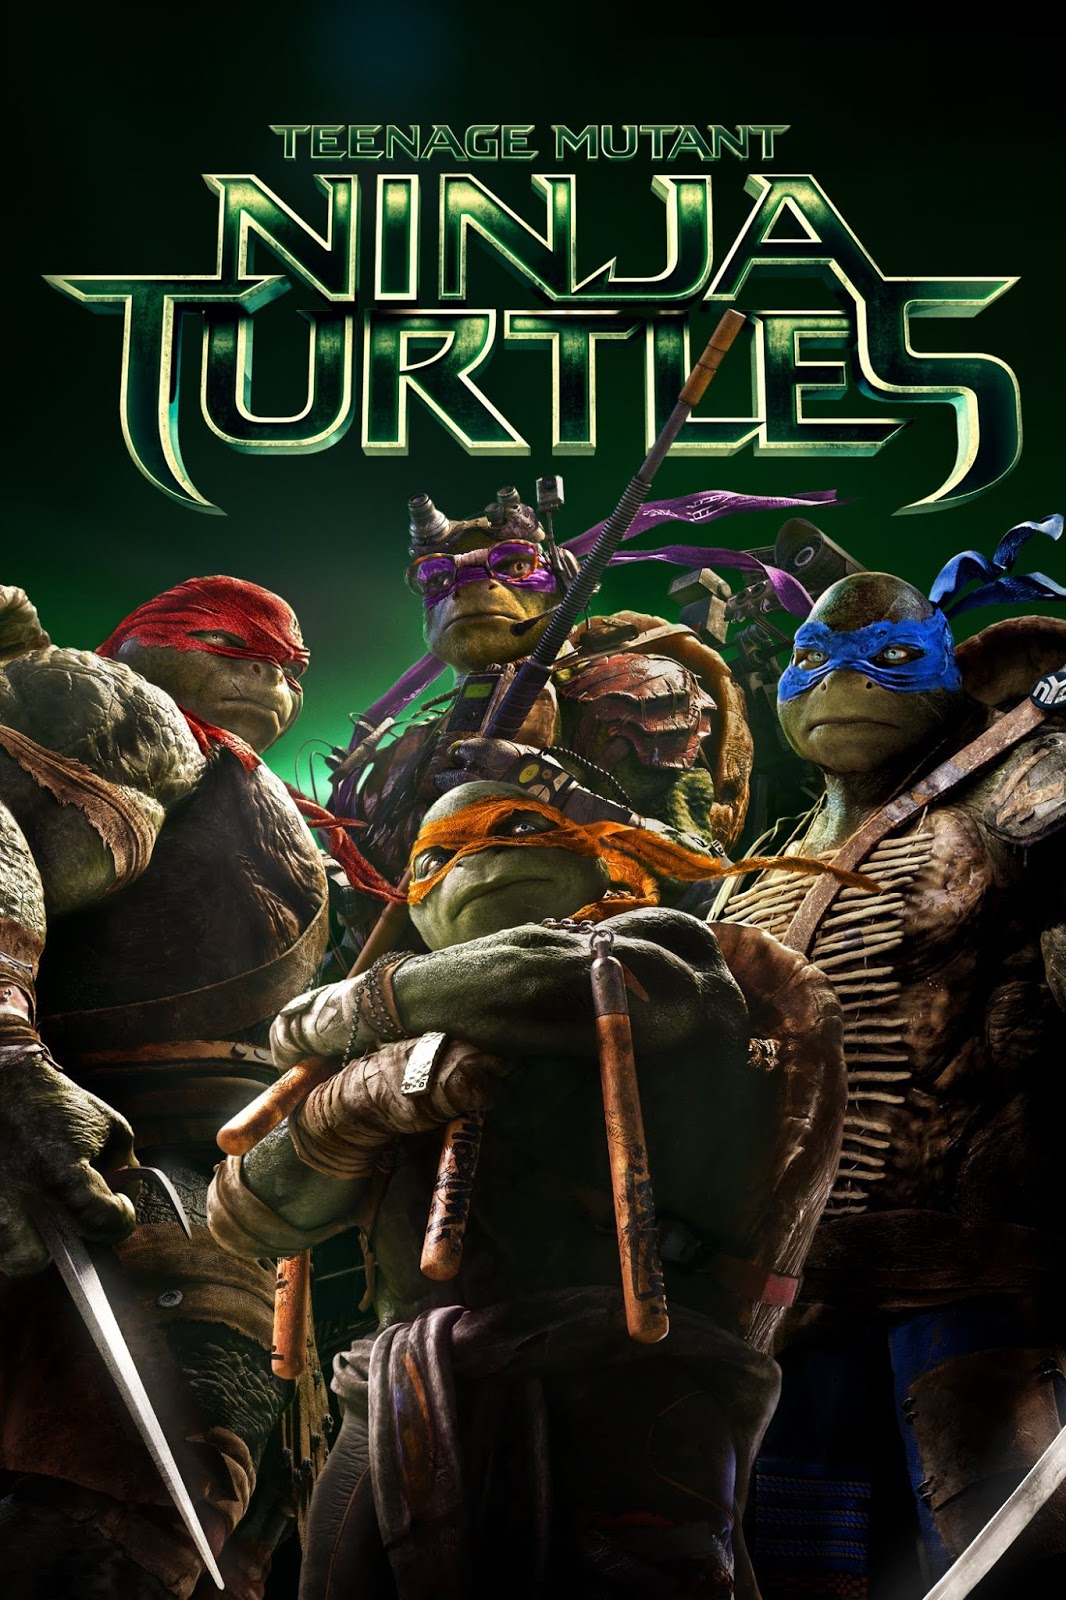 TEENAGE MUTANT NINJA TURTLES (2014) TAMIL DUBBED HD